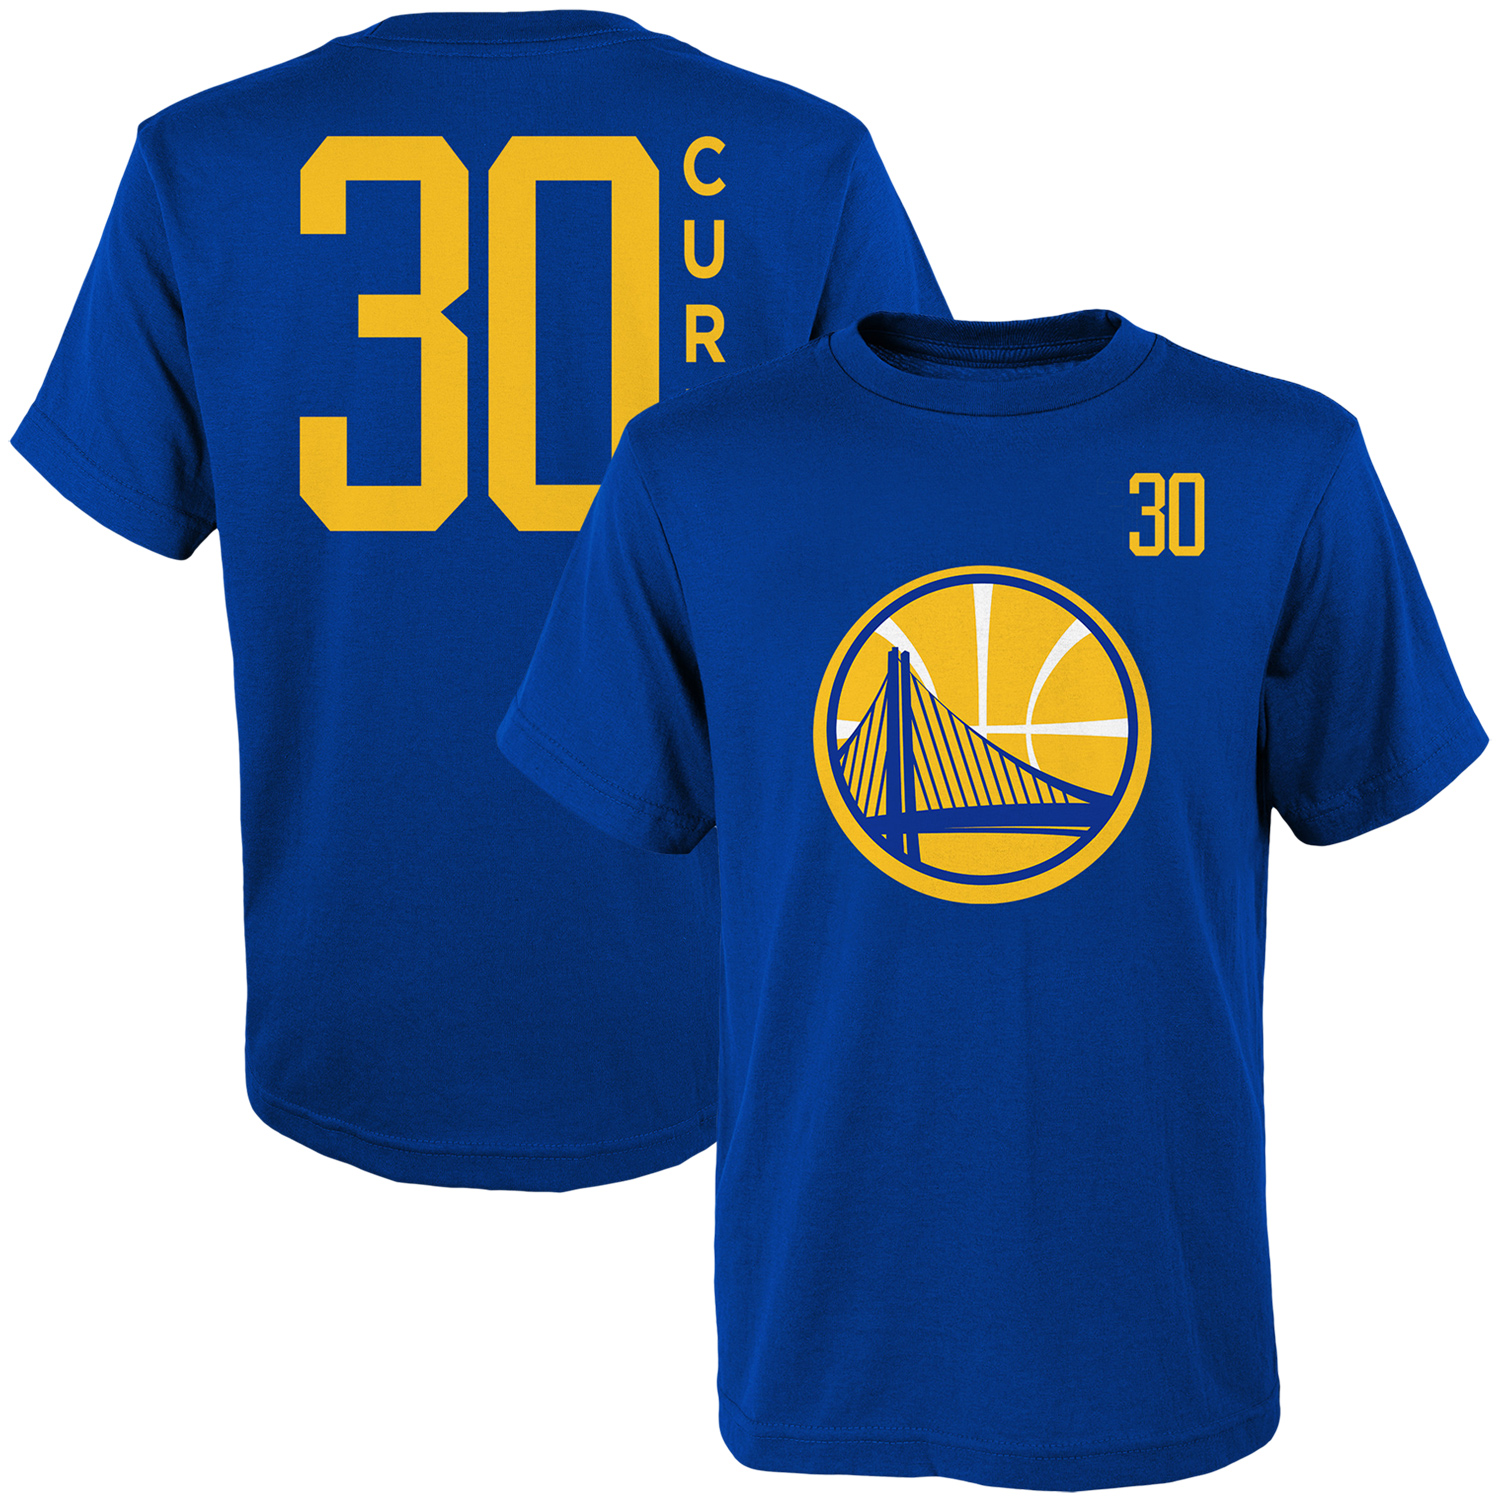 best service 8cac6 c9721 Youth Stephen Curry Royal Golden State Warriors Name & Number T-Shirt